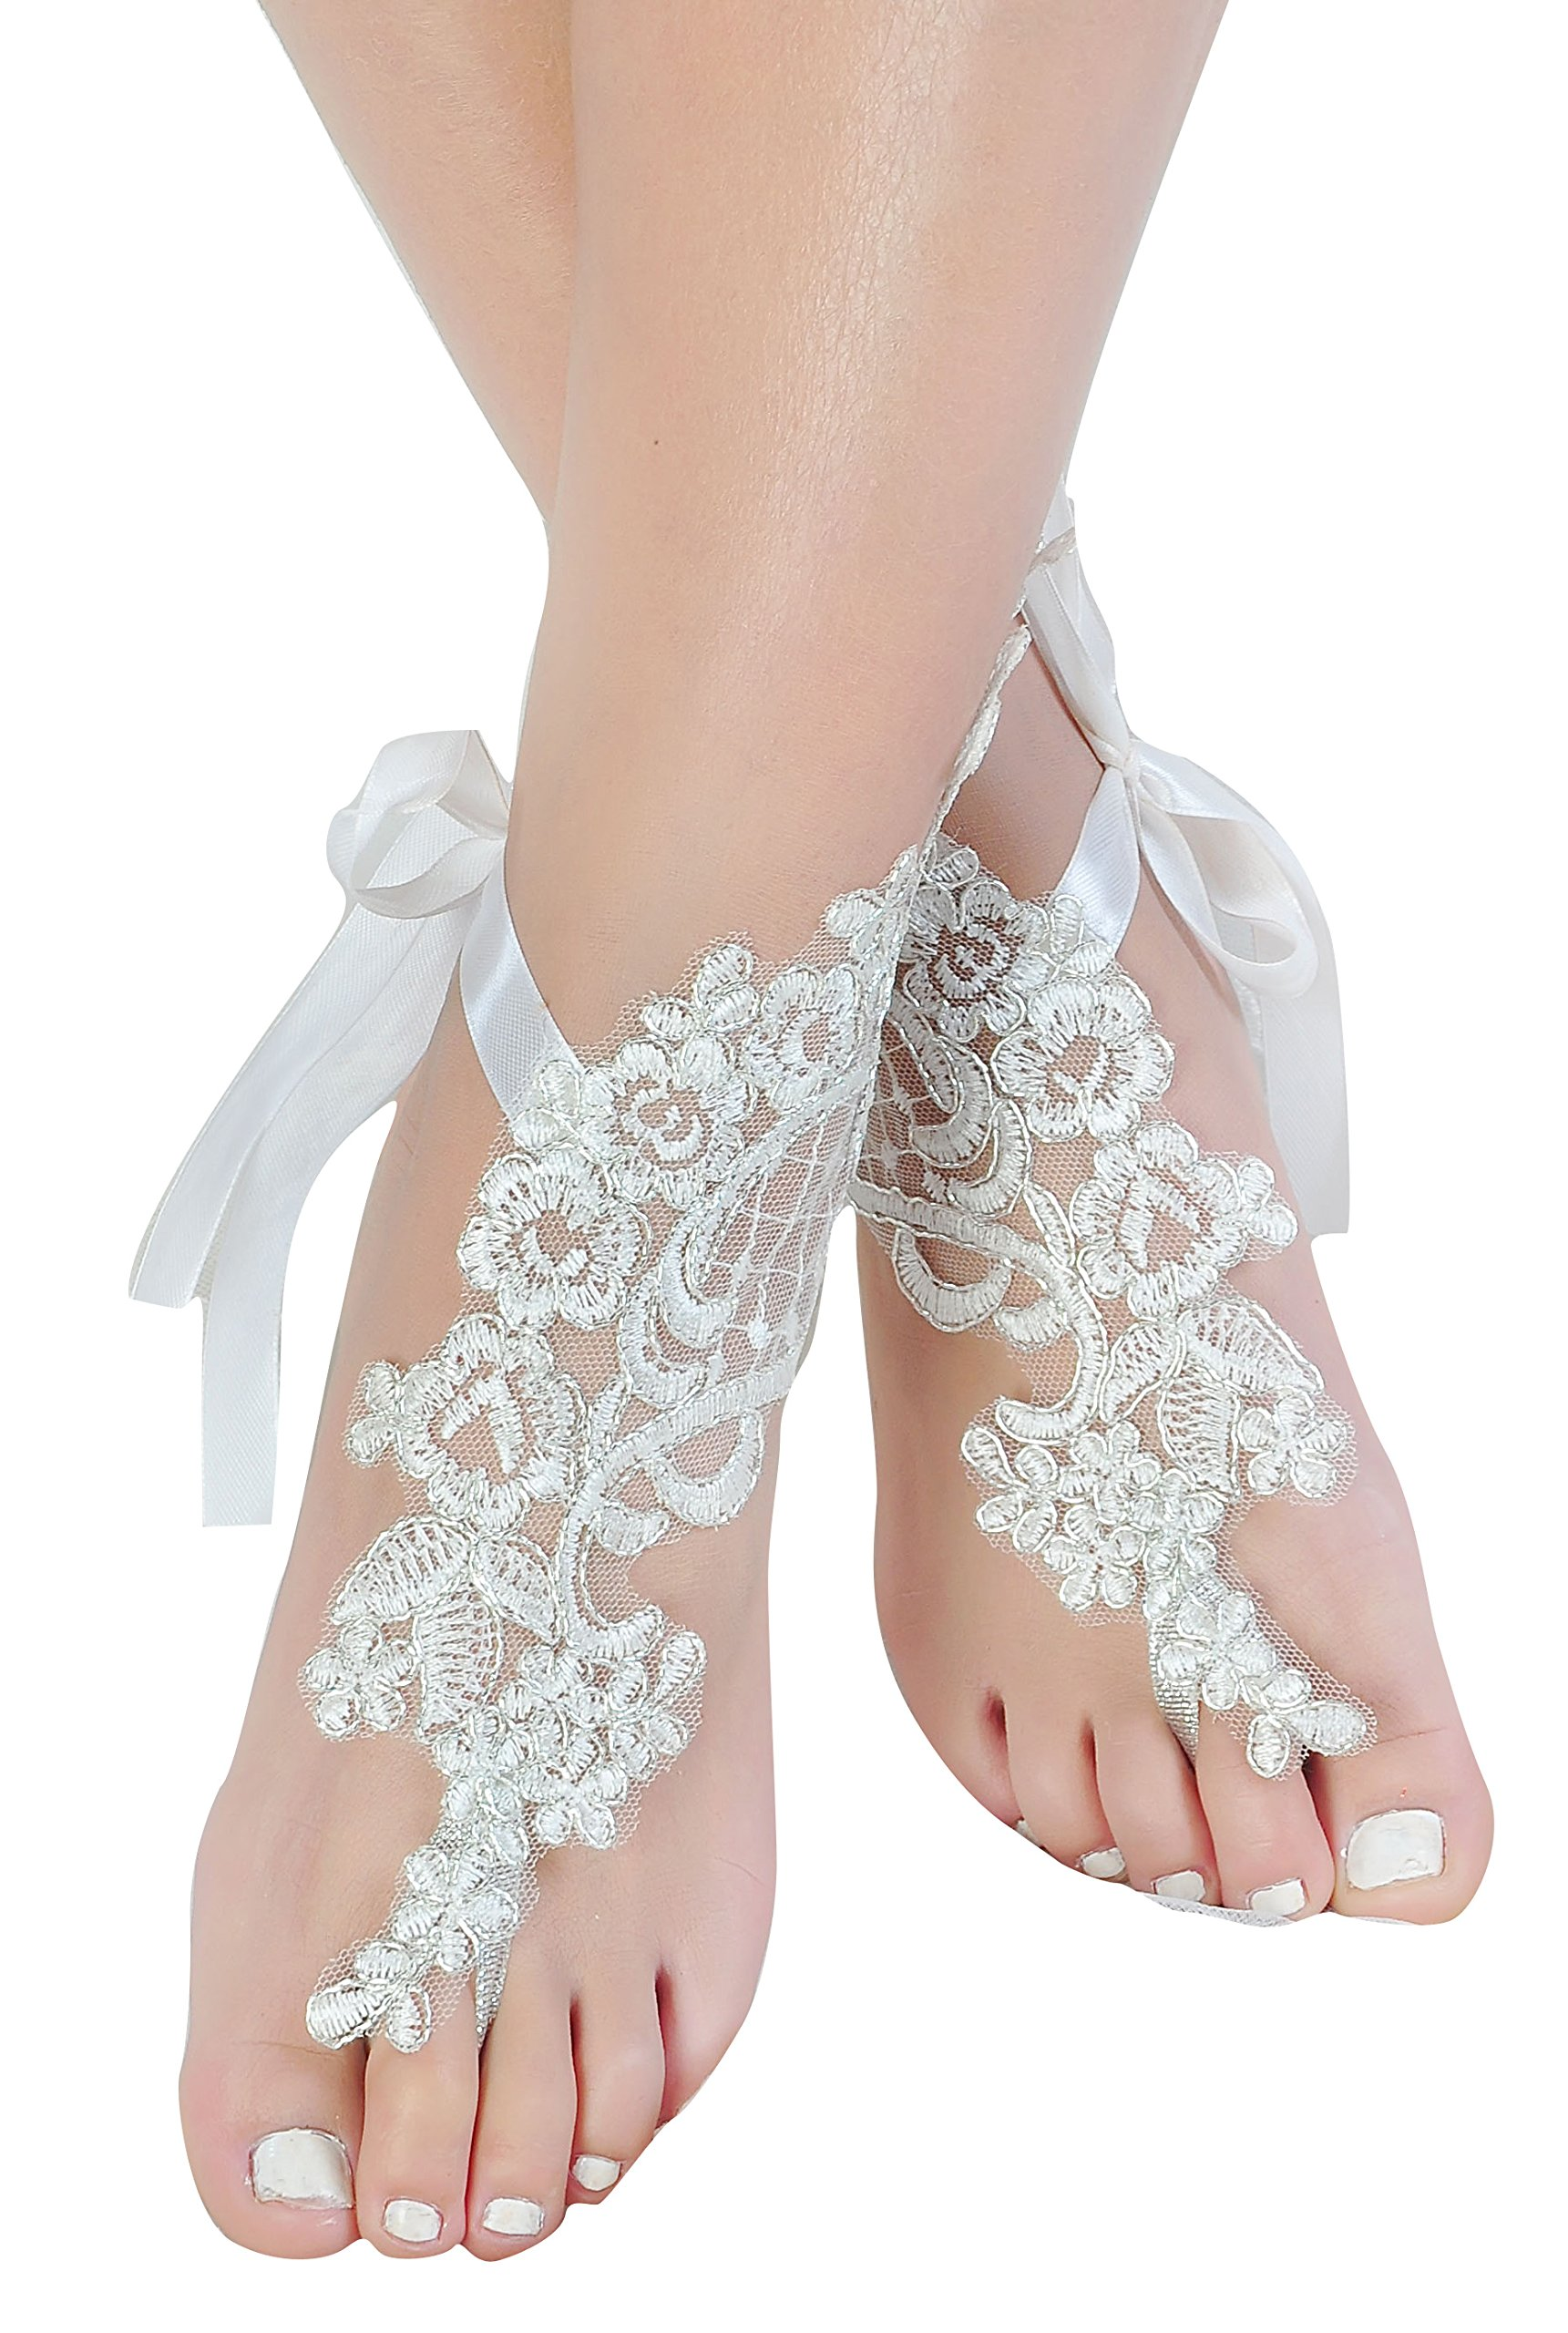 Handmade Lace Anklets,Destination Wedding Barefoot Sandals Prom Party Bangle,Bellydance Accessories-T1